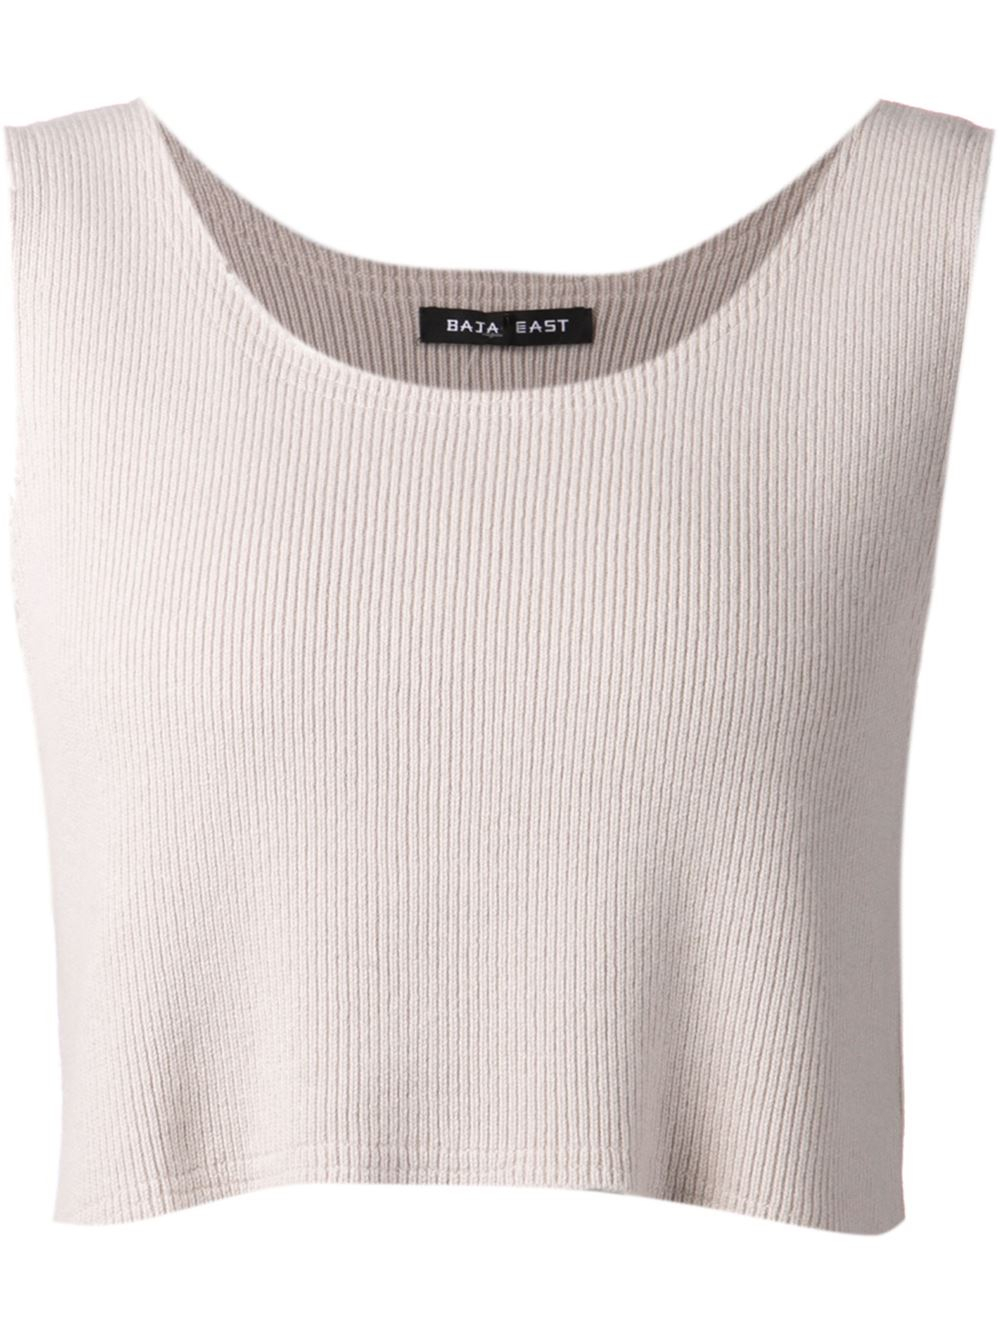 1fb2eeea0ac3f Lyst - Baja East Knit Crop Top in Gray